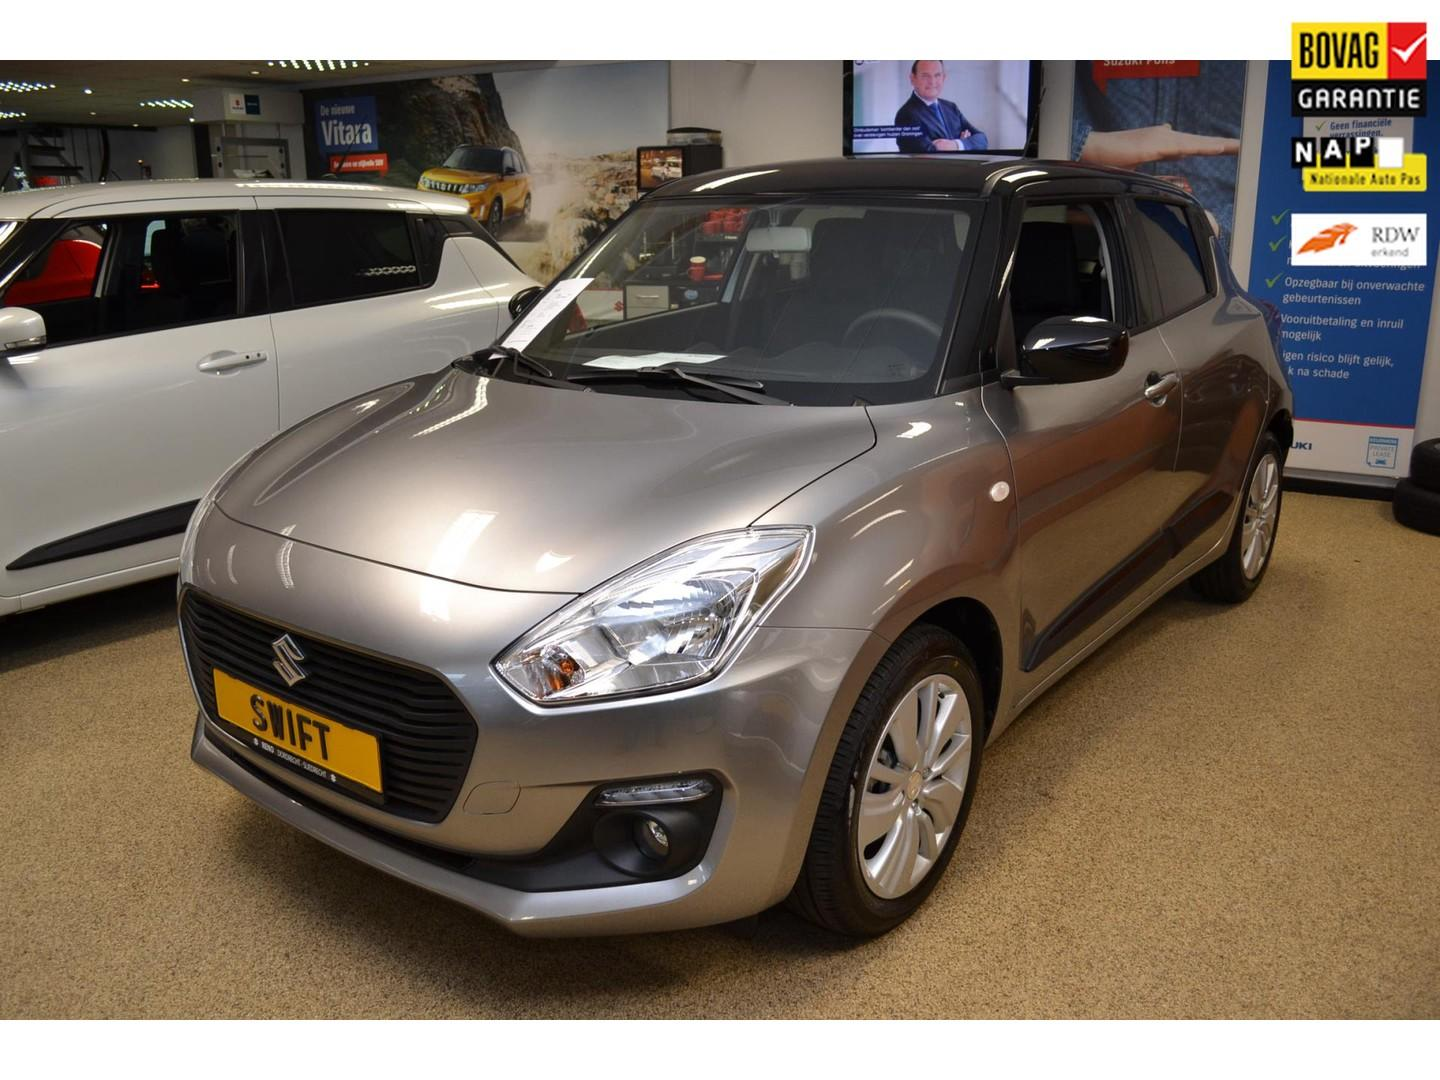 Suzuki Swift 1.2 select cvt automaat